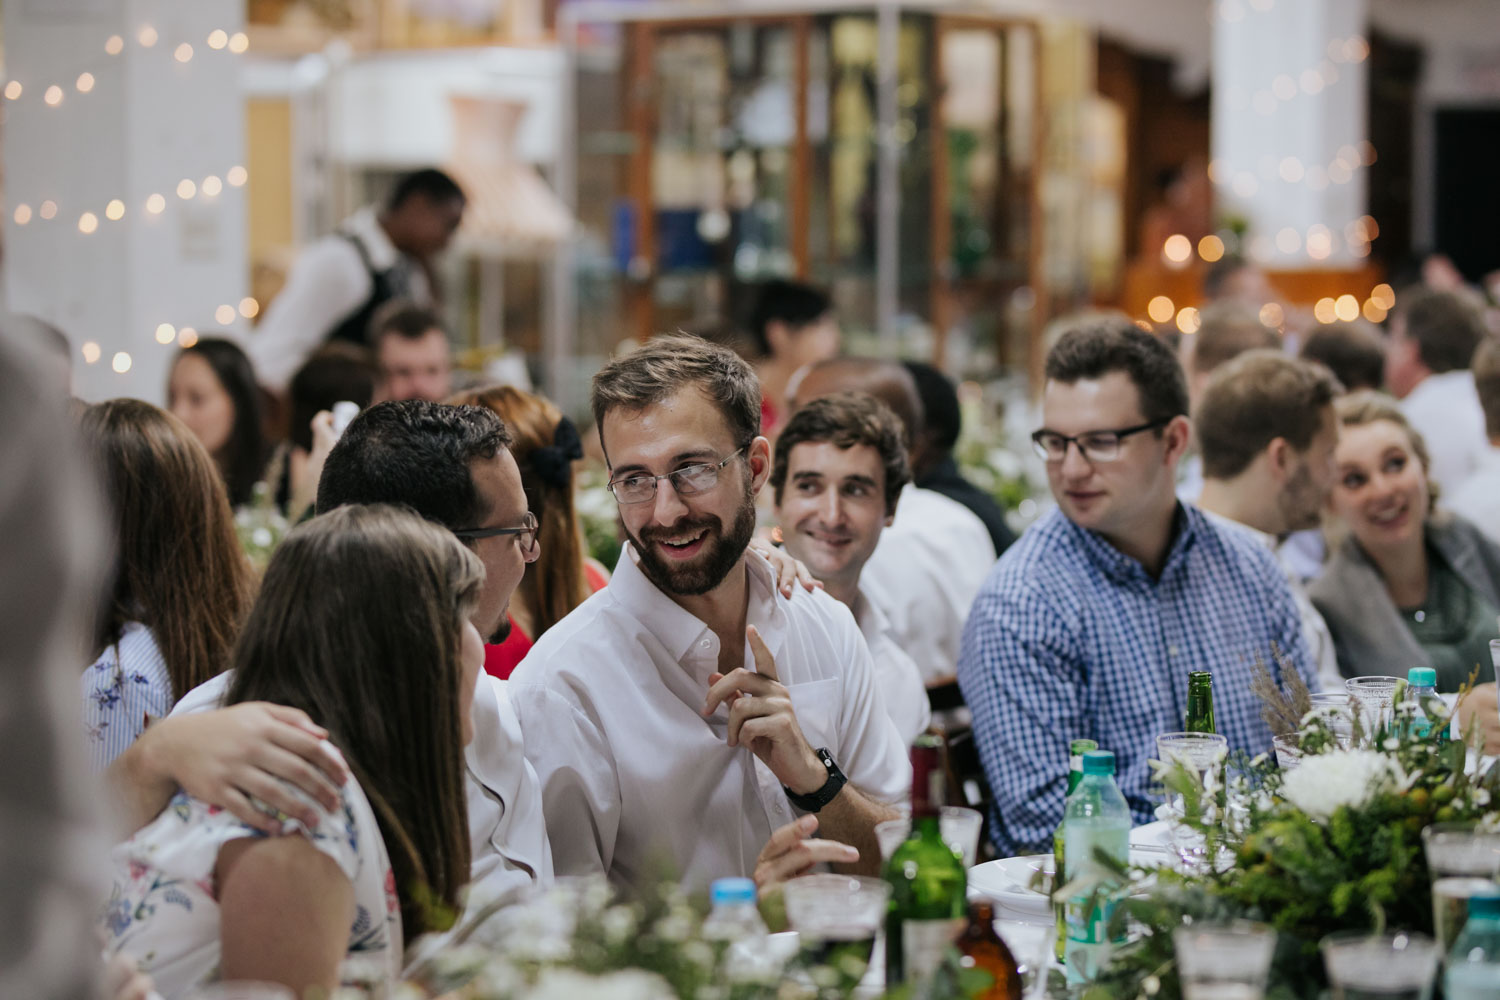 Candid Photo Of Guests Chatting During Wedding Dinner Feast